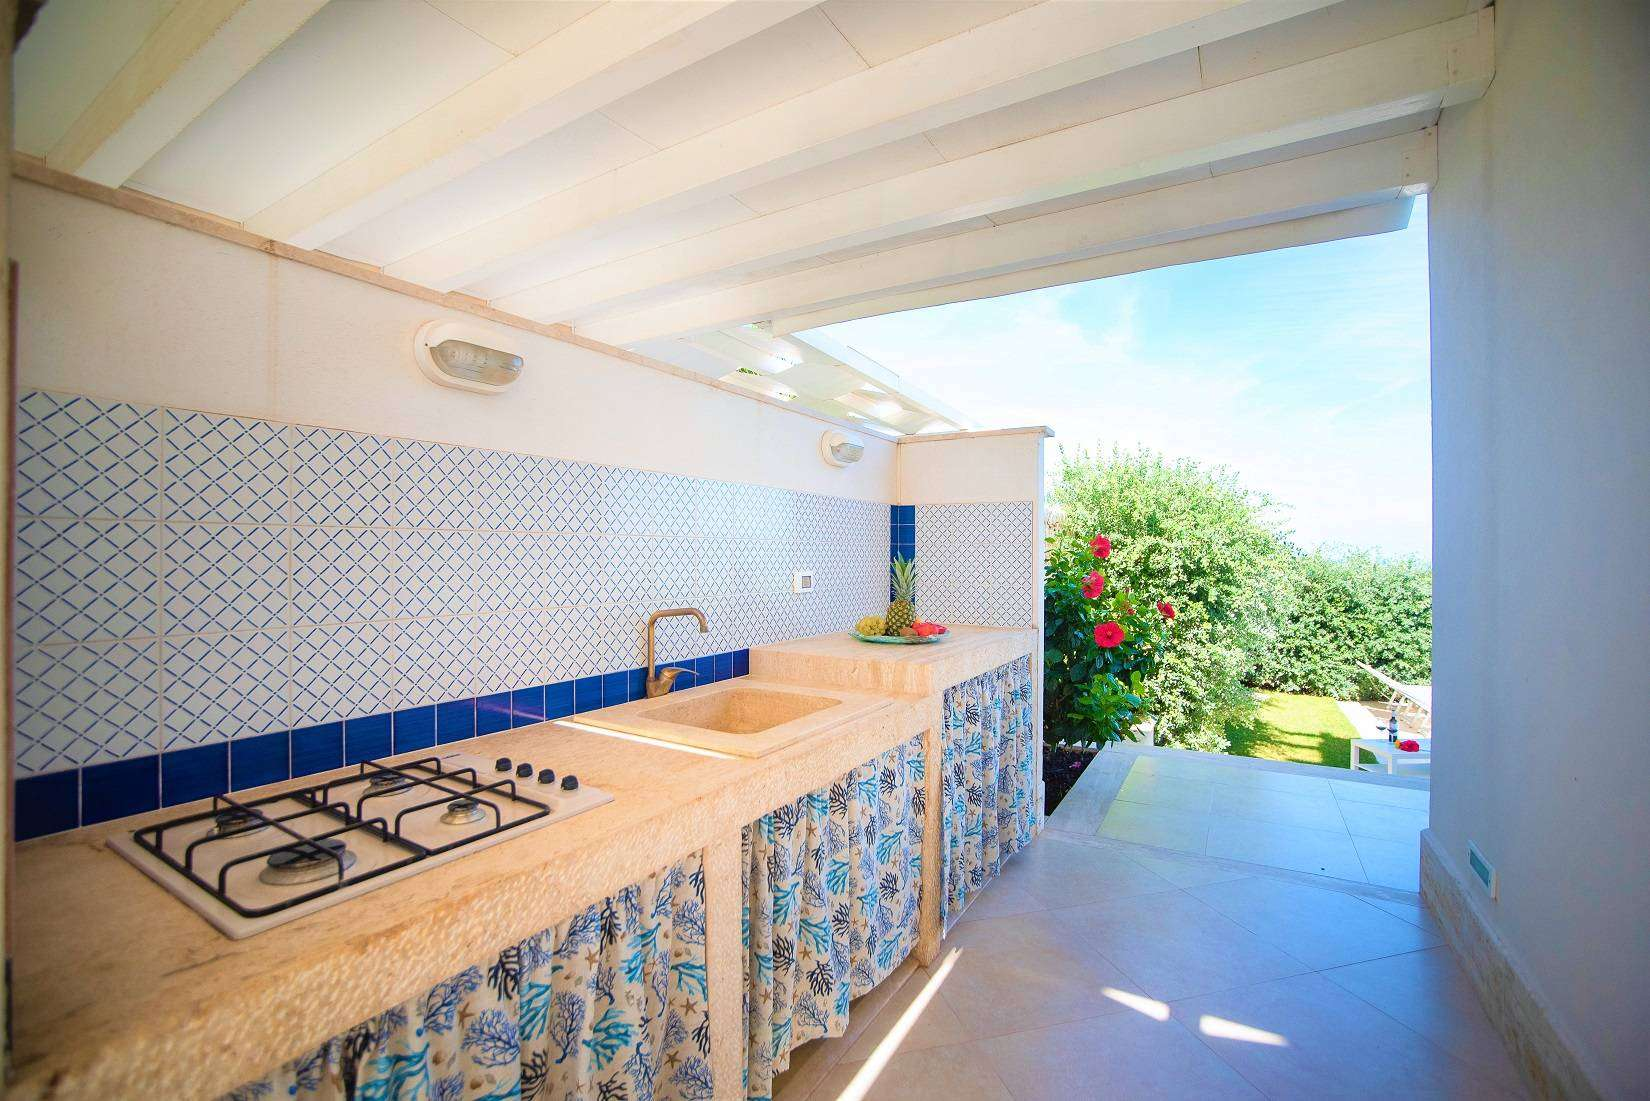 20 Bianca Outdoor Kitchen